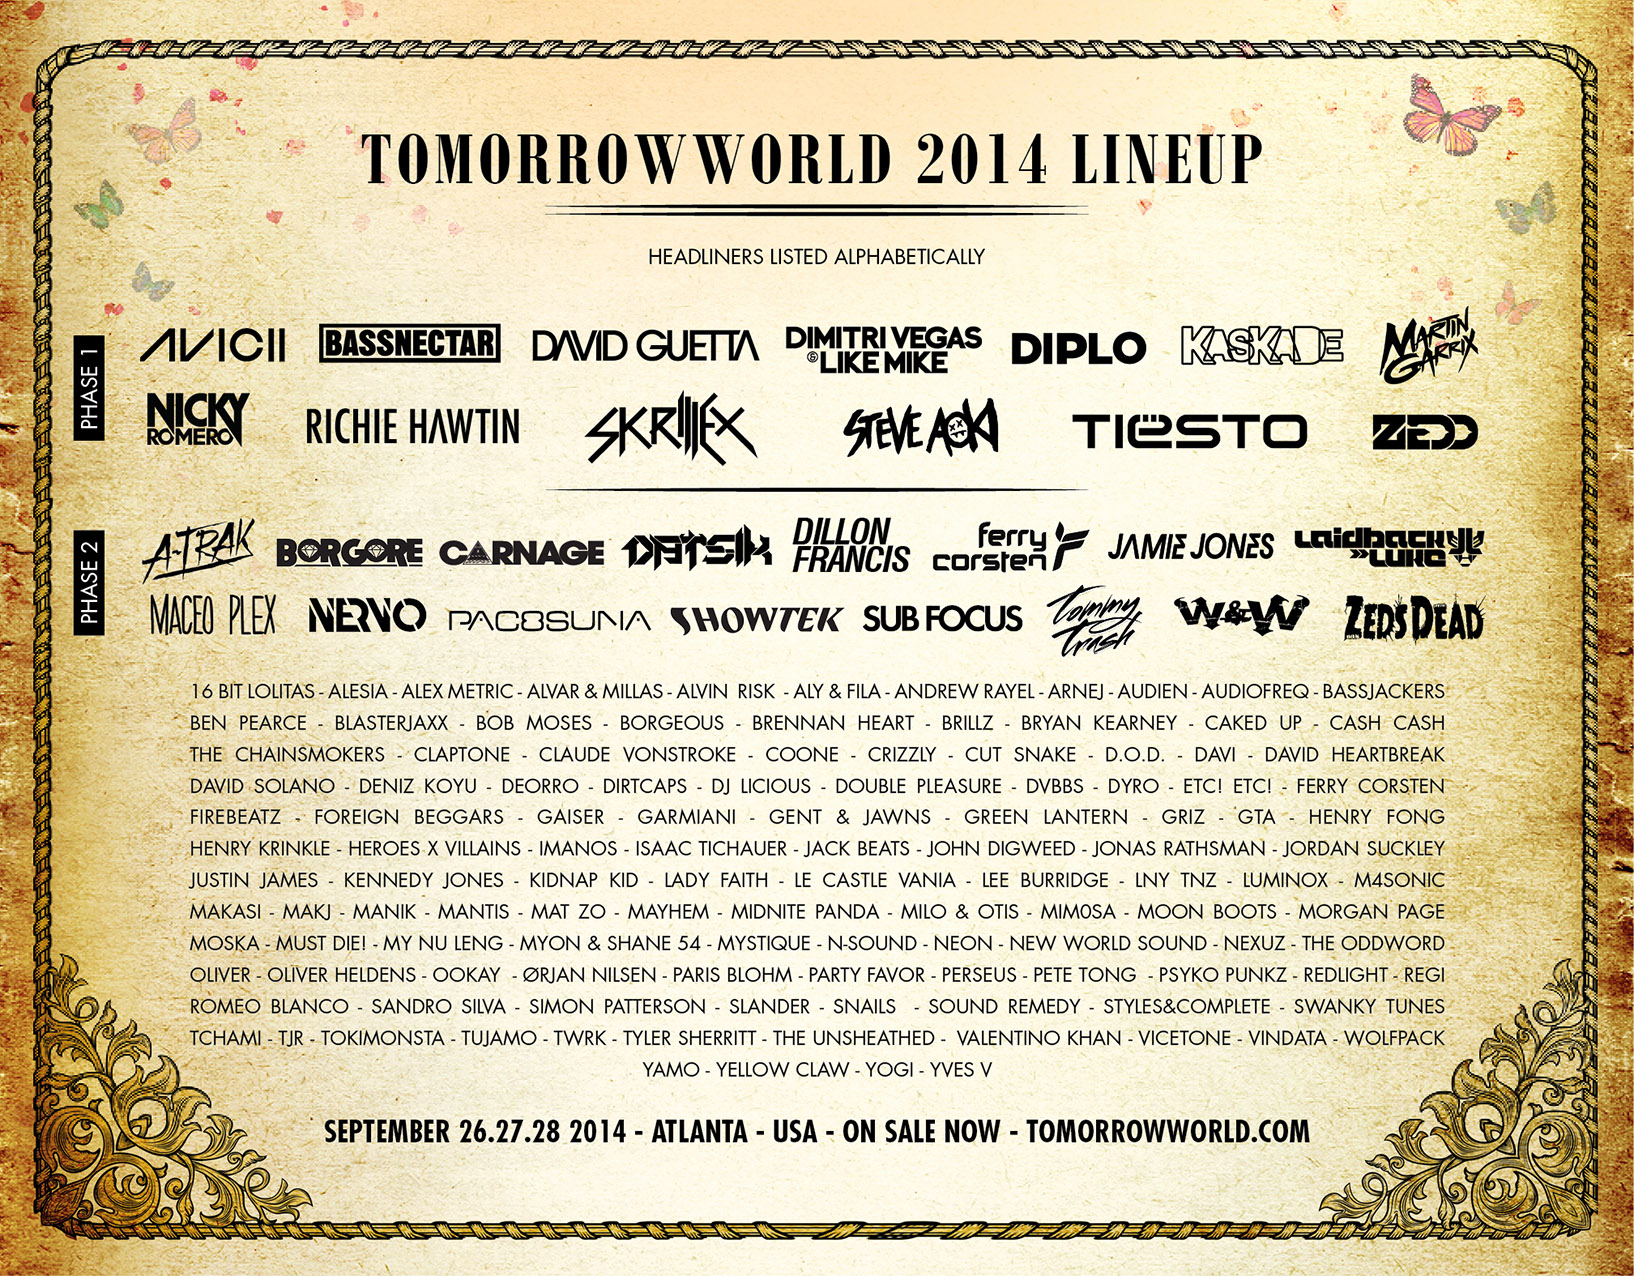 TW 2014 Lineup - Poster